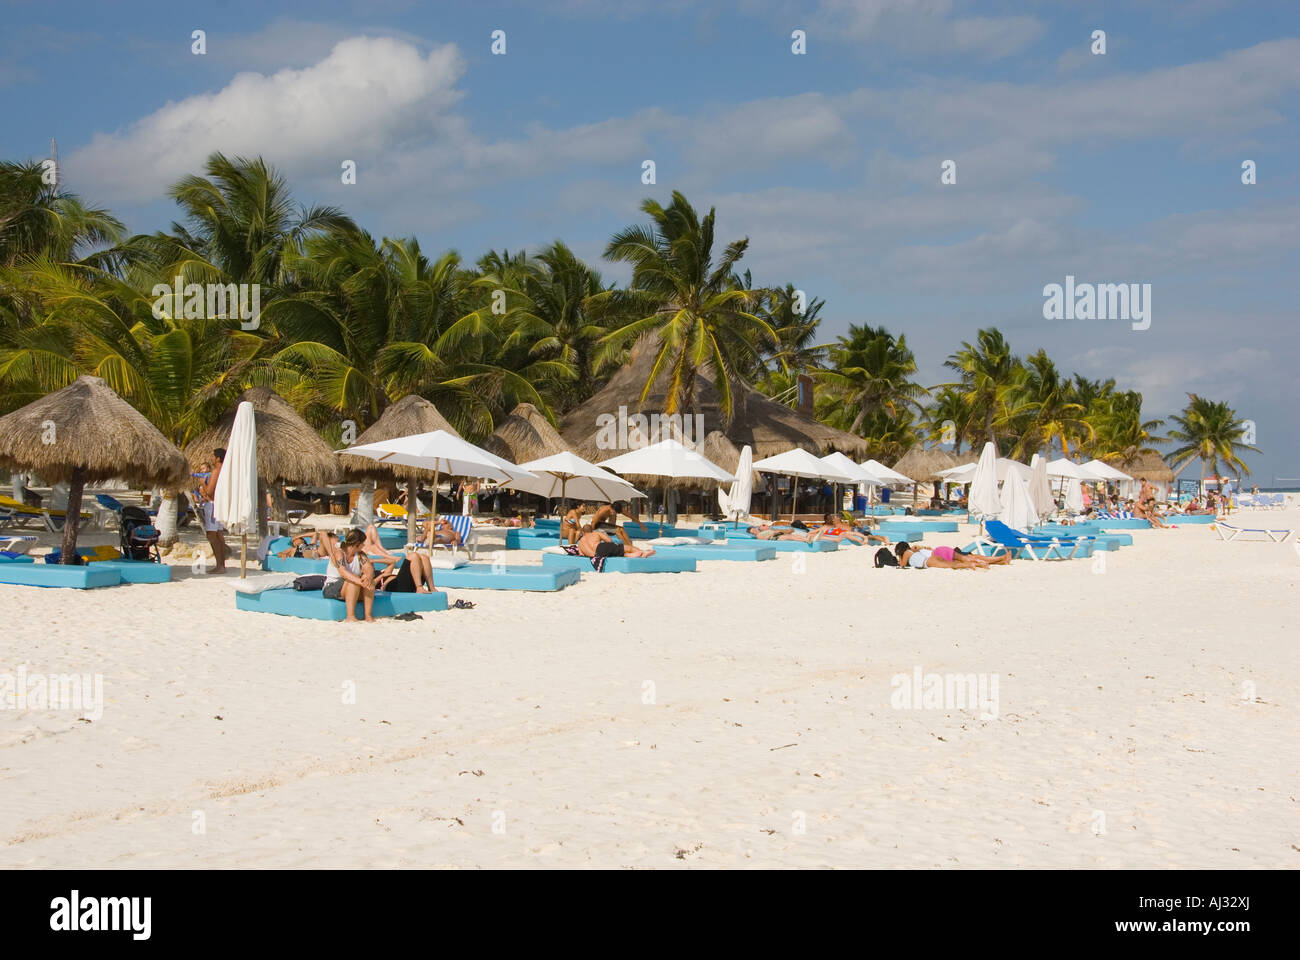 Palm Trees and Thatched Roof Cabana Huts of the Beach Bar ...